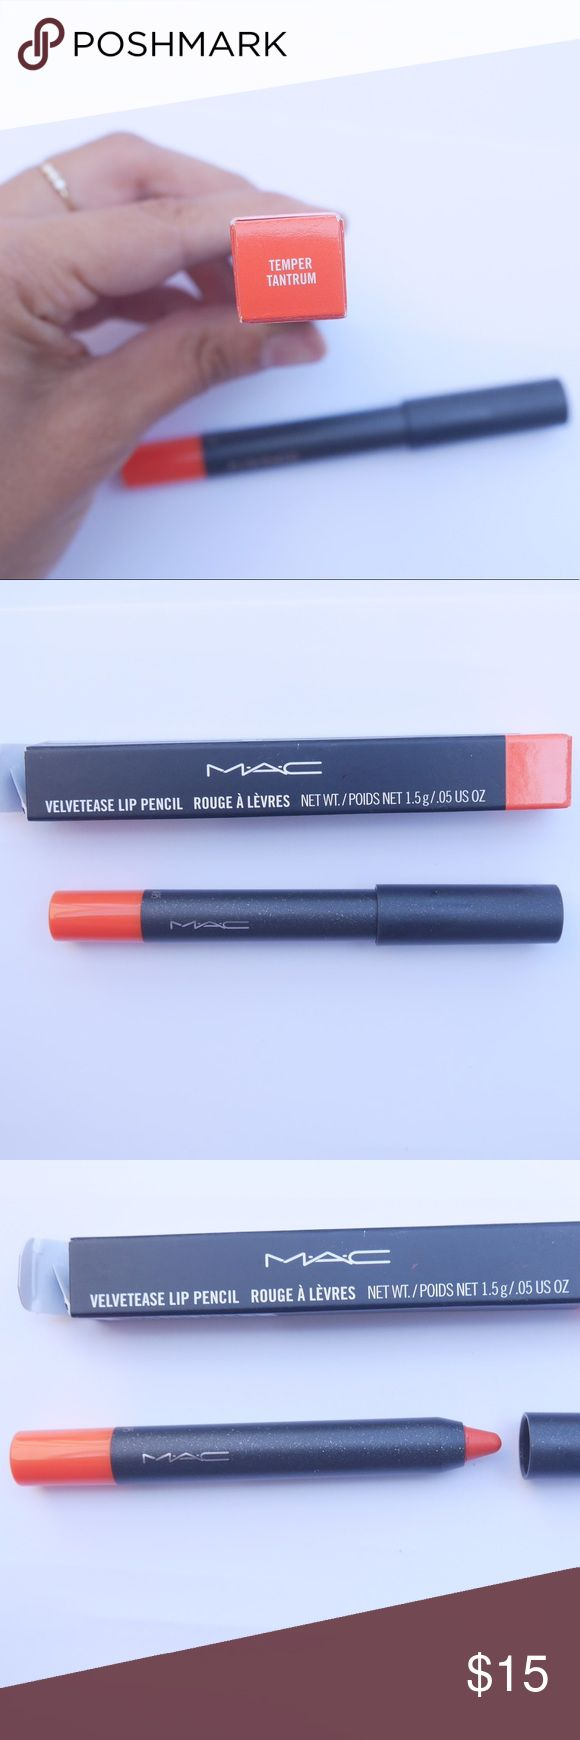 NIB MAC - Velvetease Lip Pencil NEW Temper Tantrum New this was a gift and I already have this color. This is a warm orange with a satin finish that is permanent. Retails for $20. No sharpener required. Smooth clean finish. MAC Cosmetics Makeup Lipstick